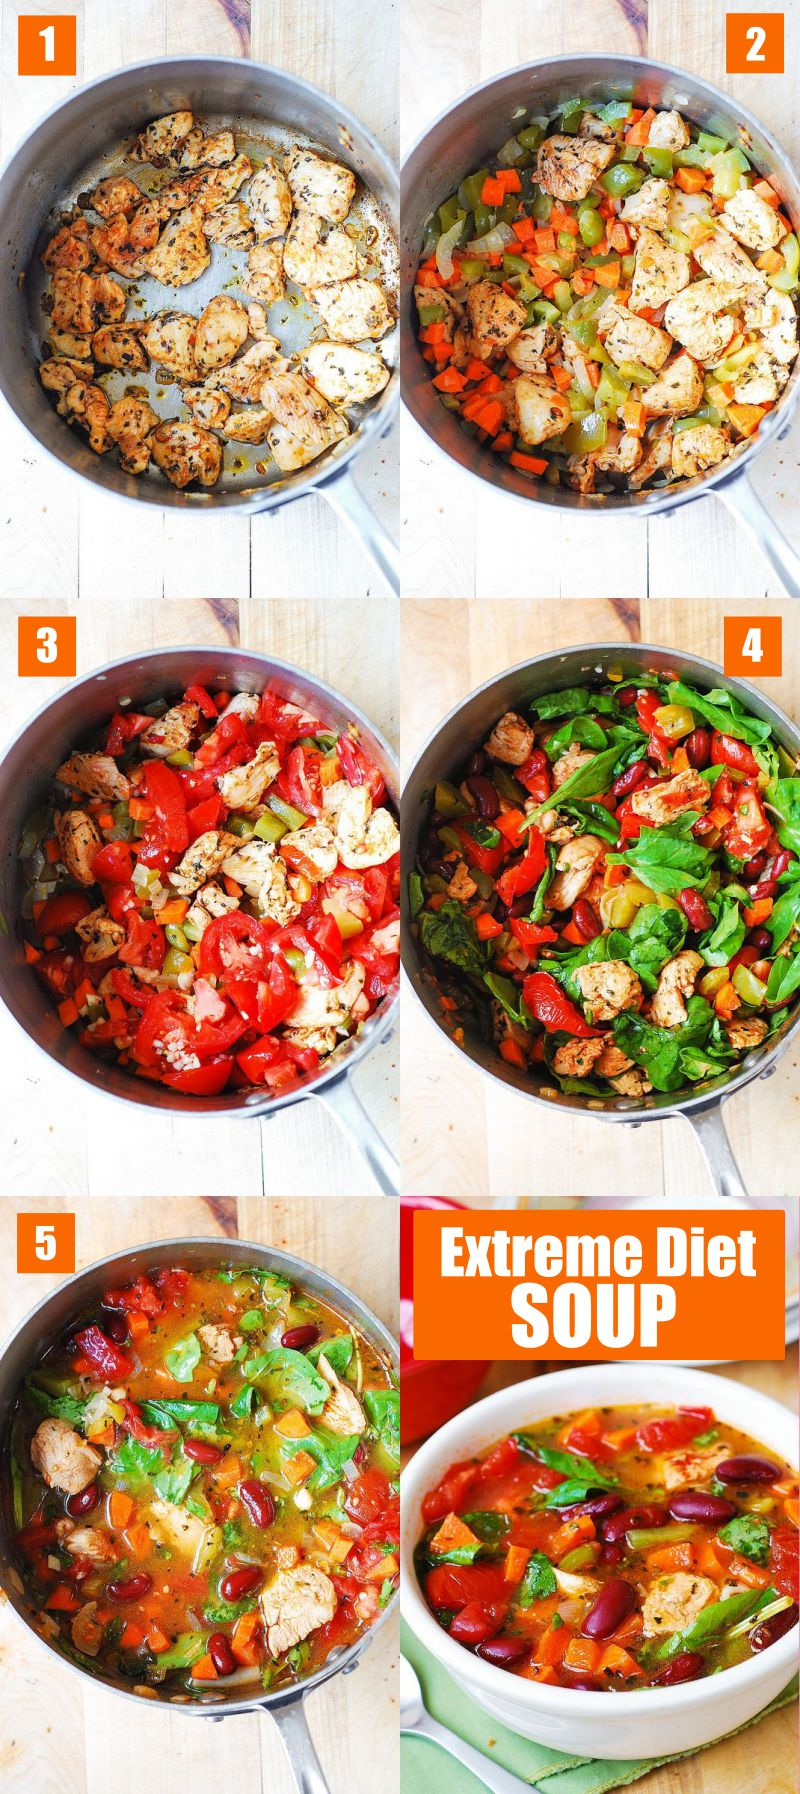 Extreme Diet Soup